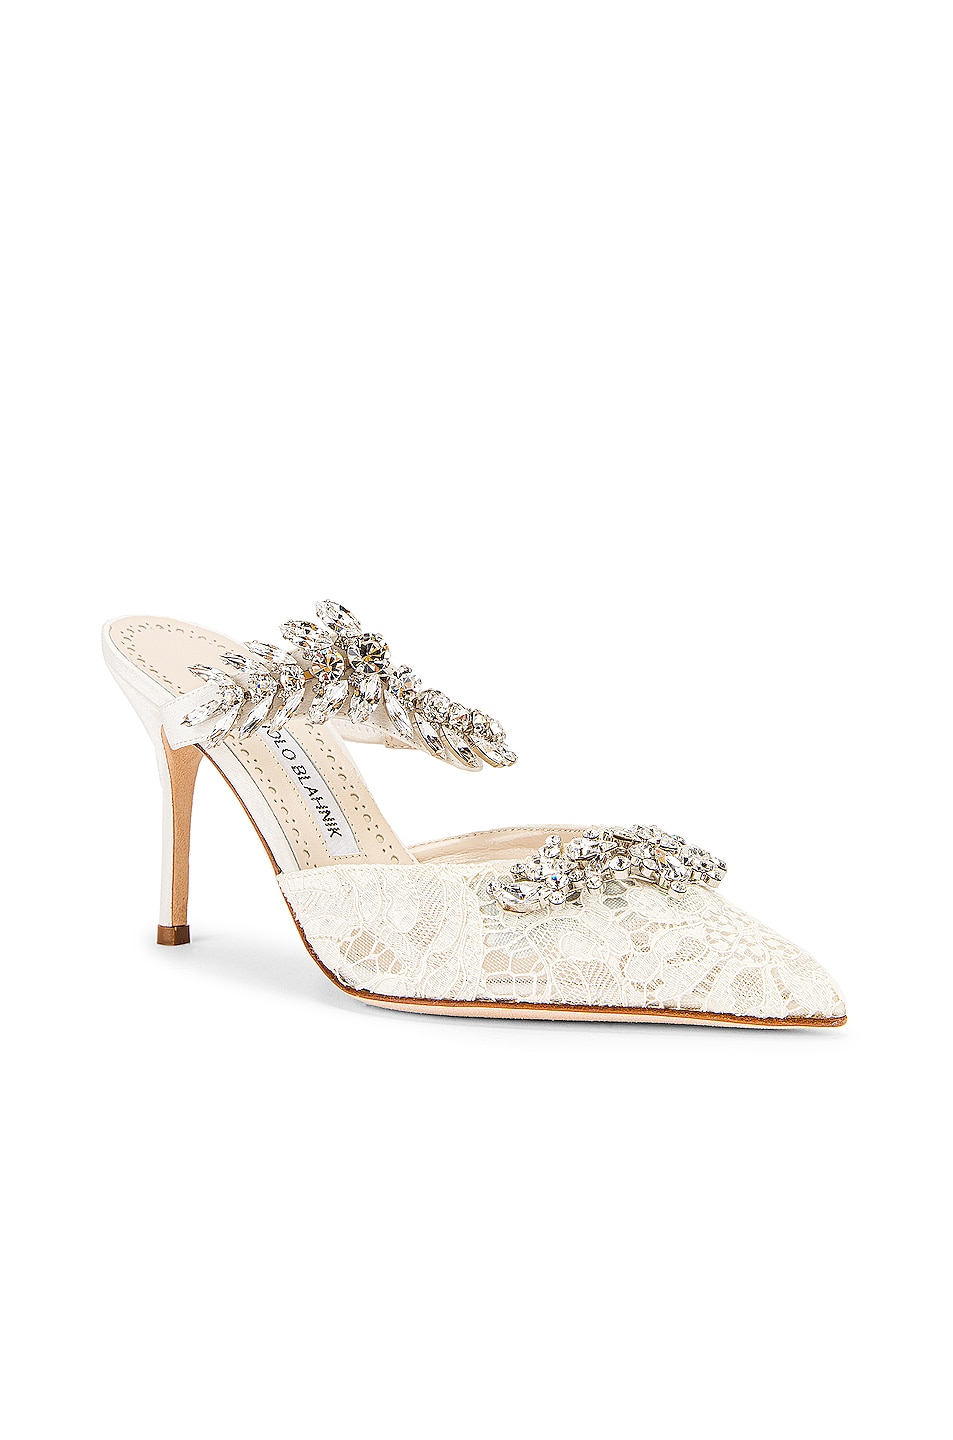 Image 3 of Manolo Blahnik Lurum 90 Mule in White